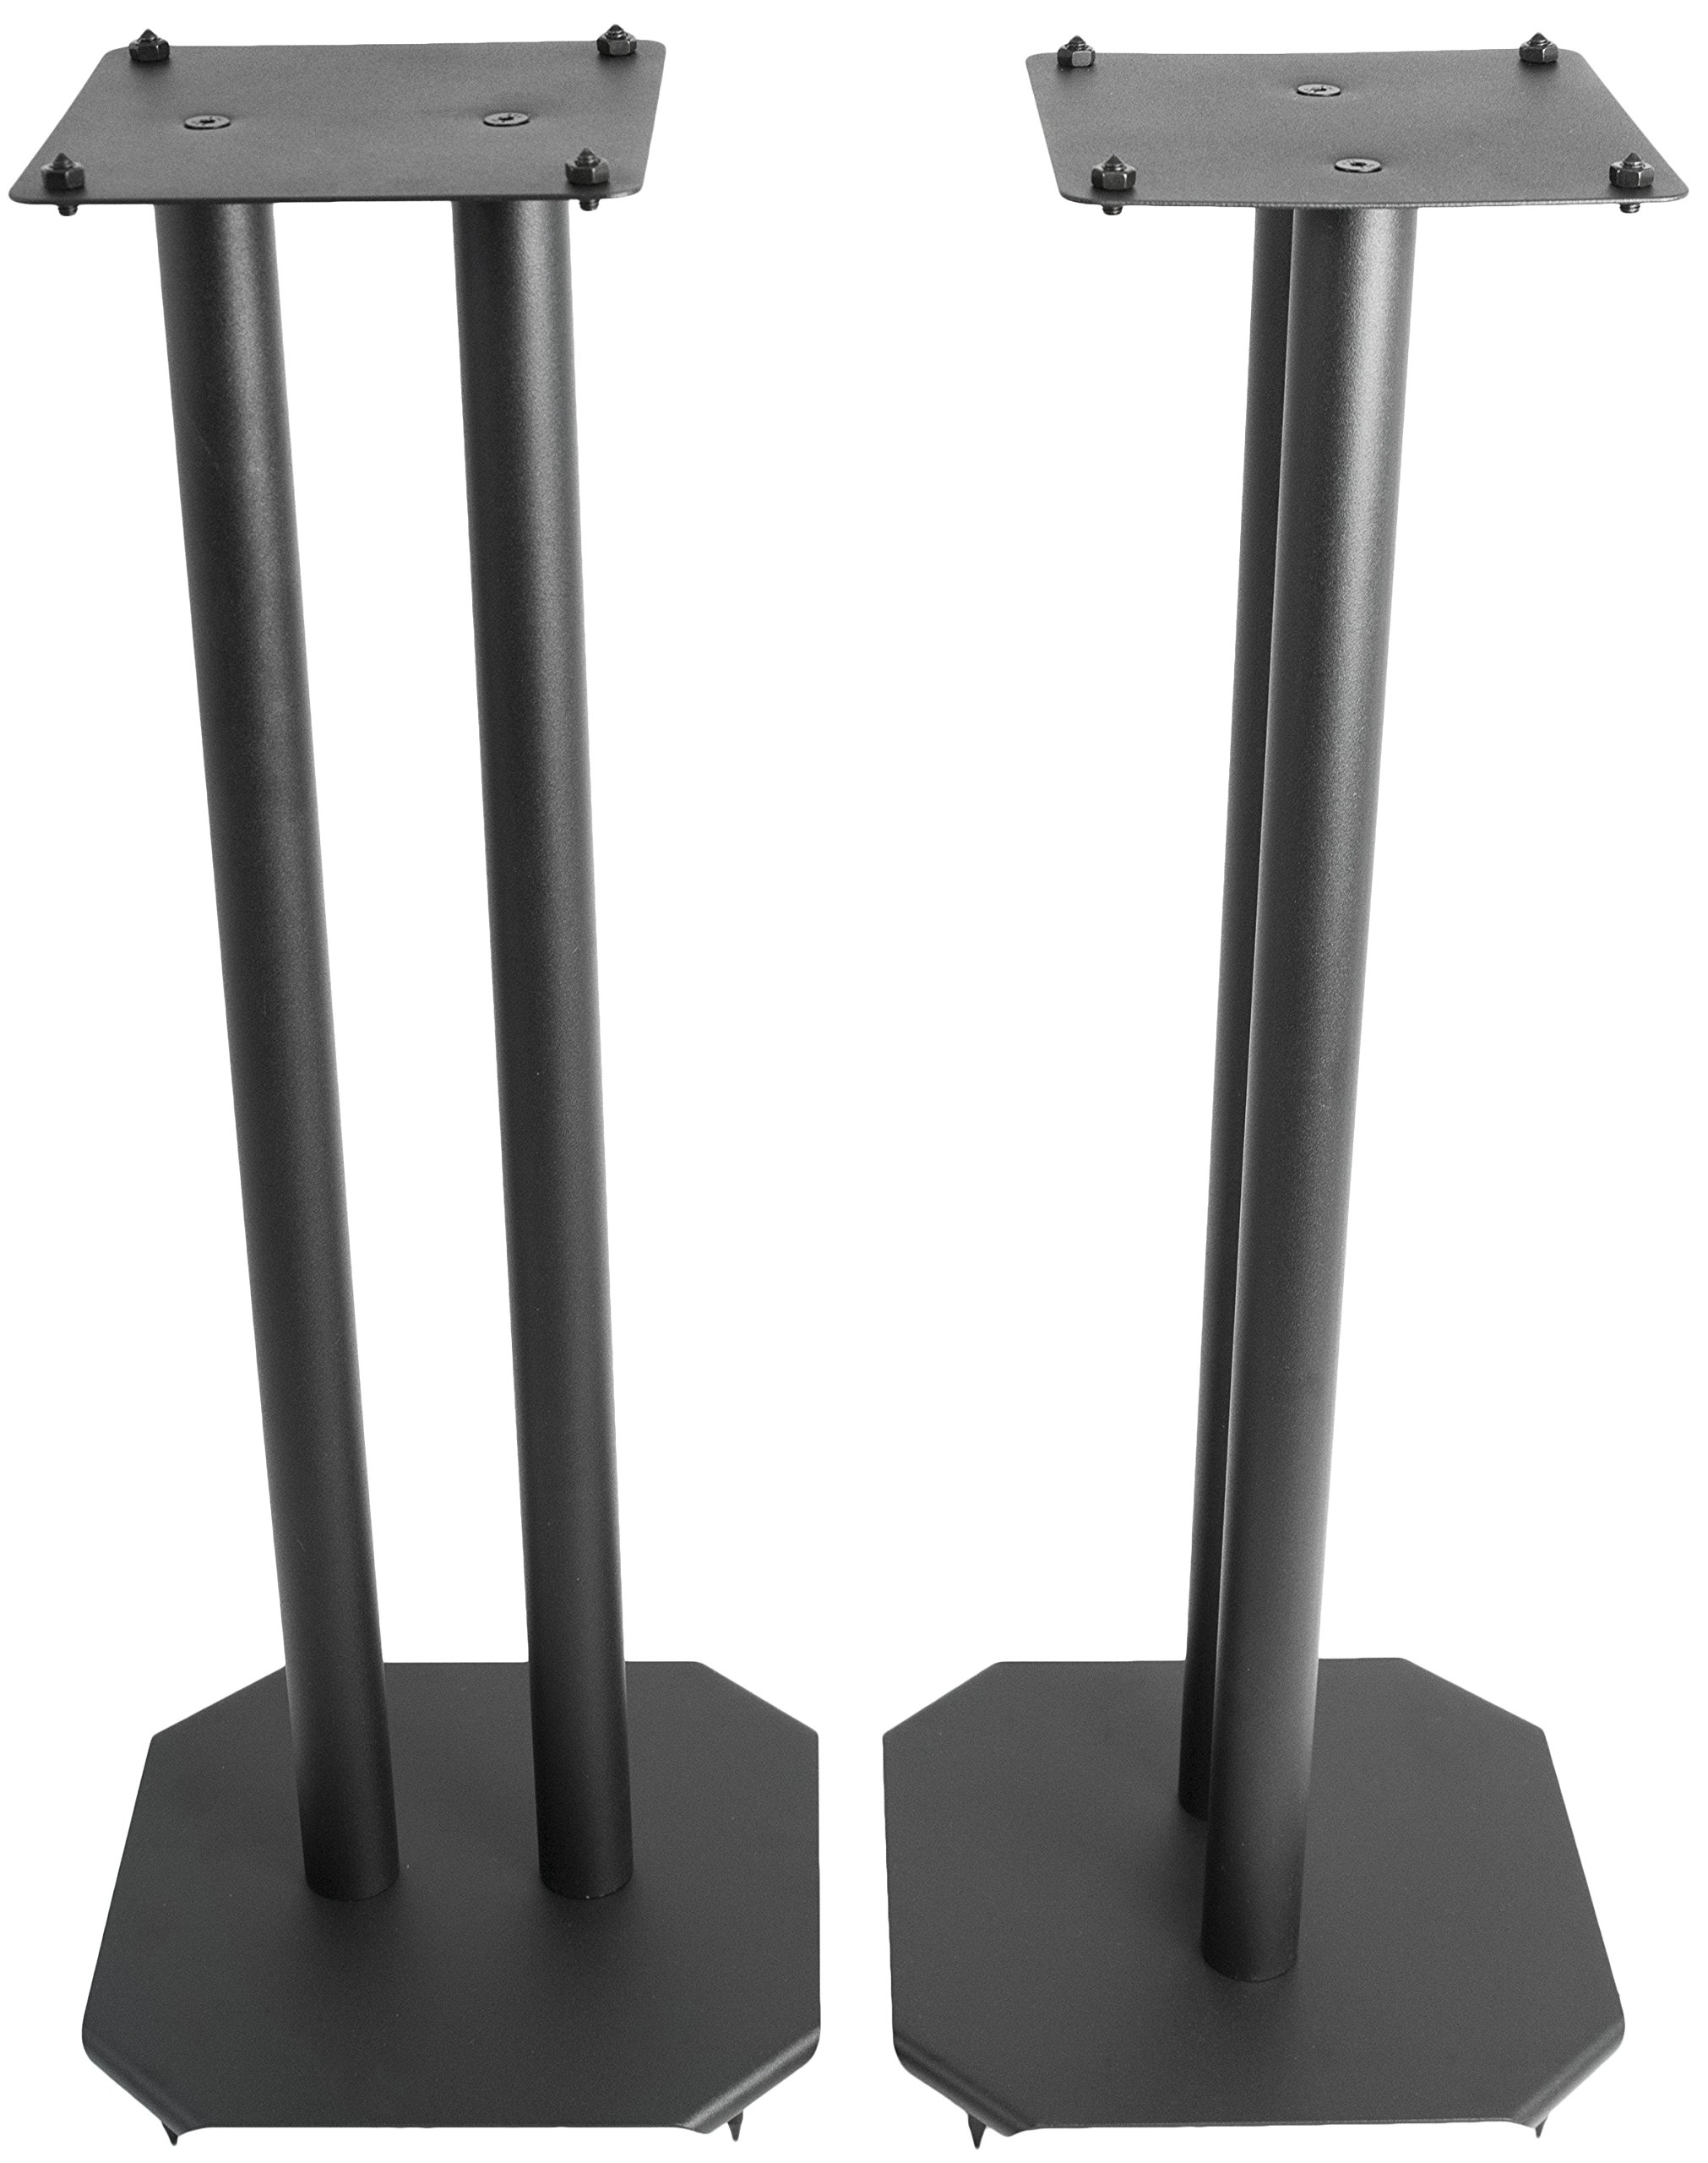 VIVO Premium Universal 25 inch Floor Speaker Stands for Surround Sound and Book Shelf Speakers (STAND-SP03B) by VIVO